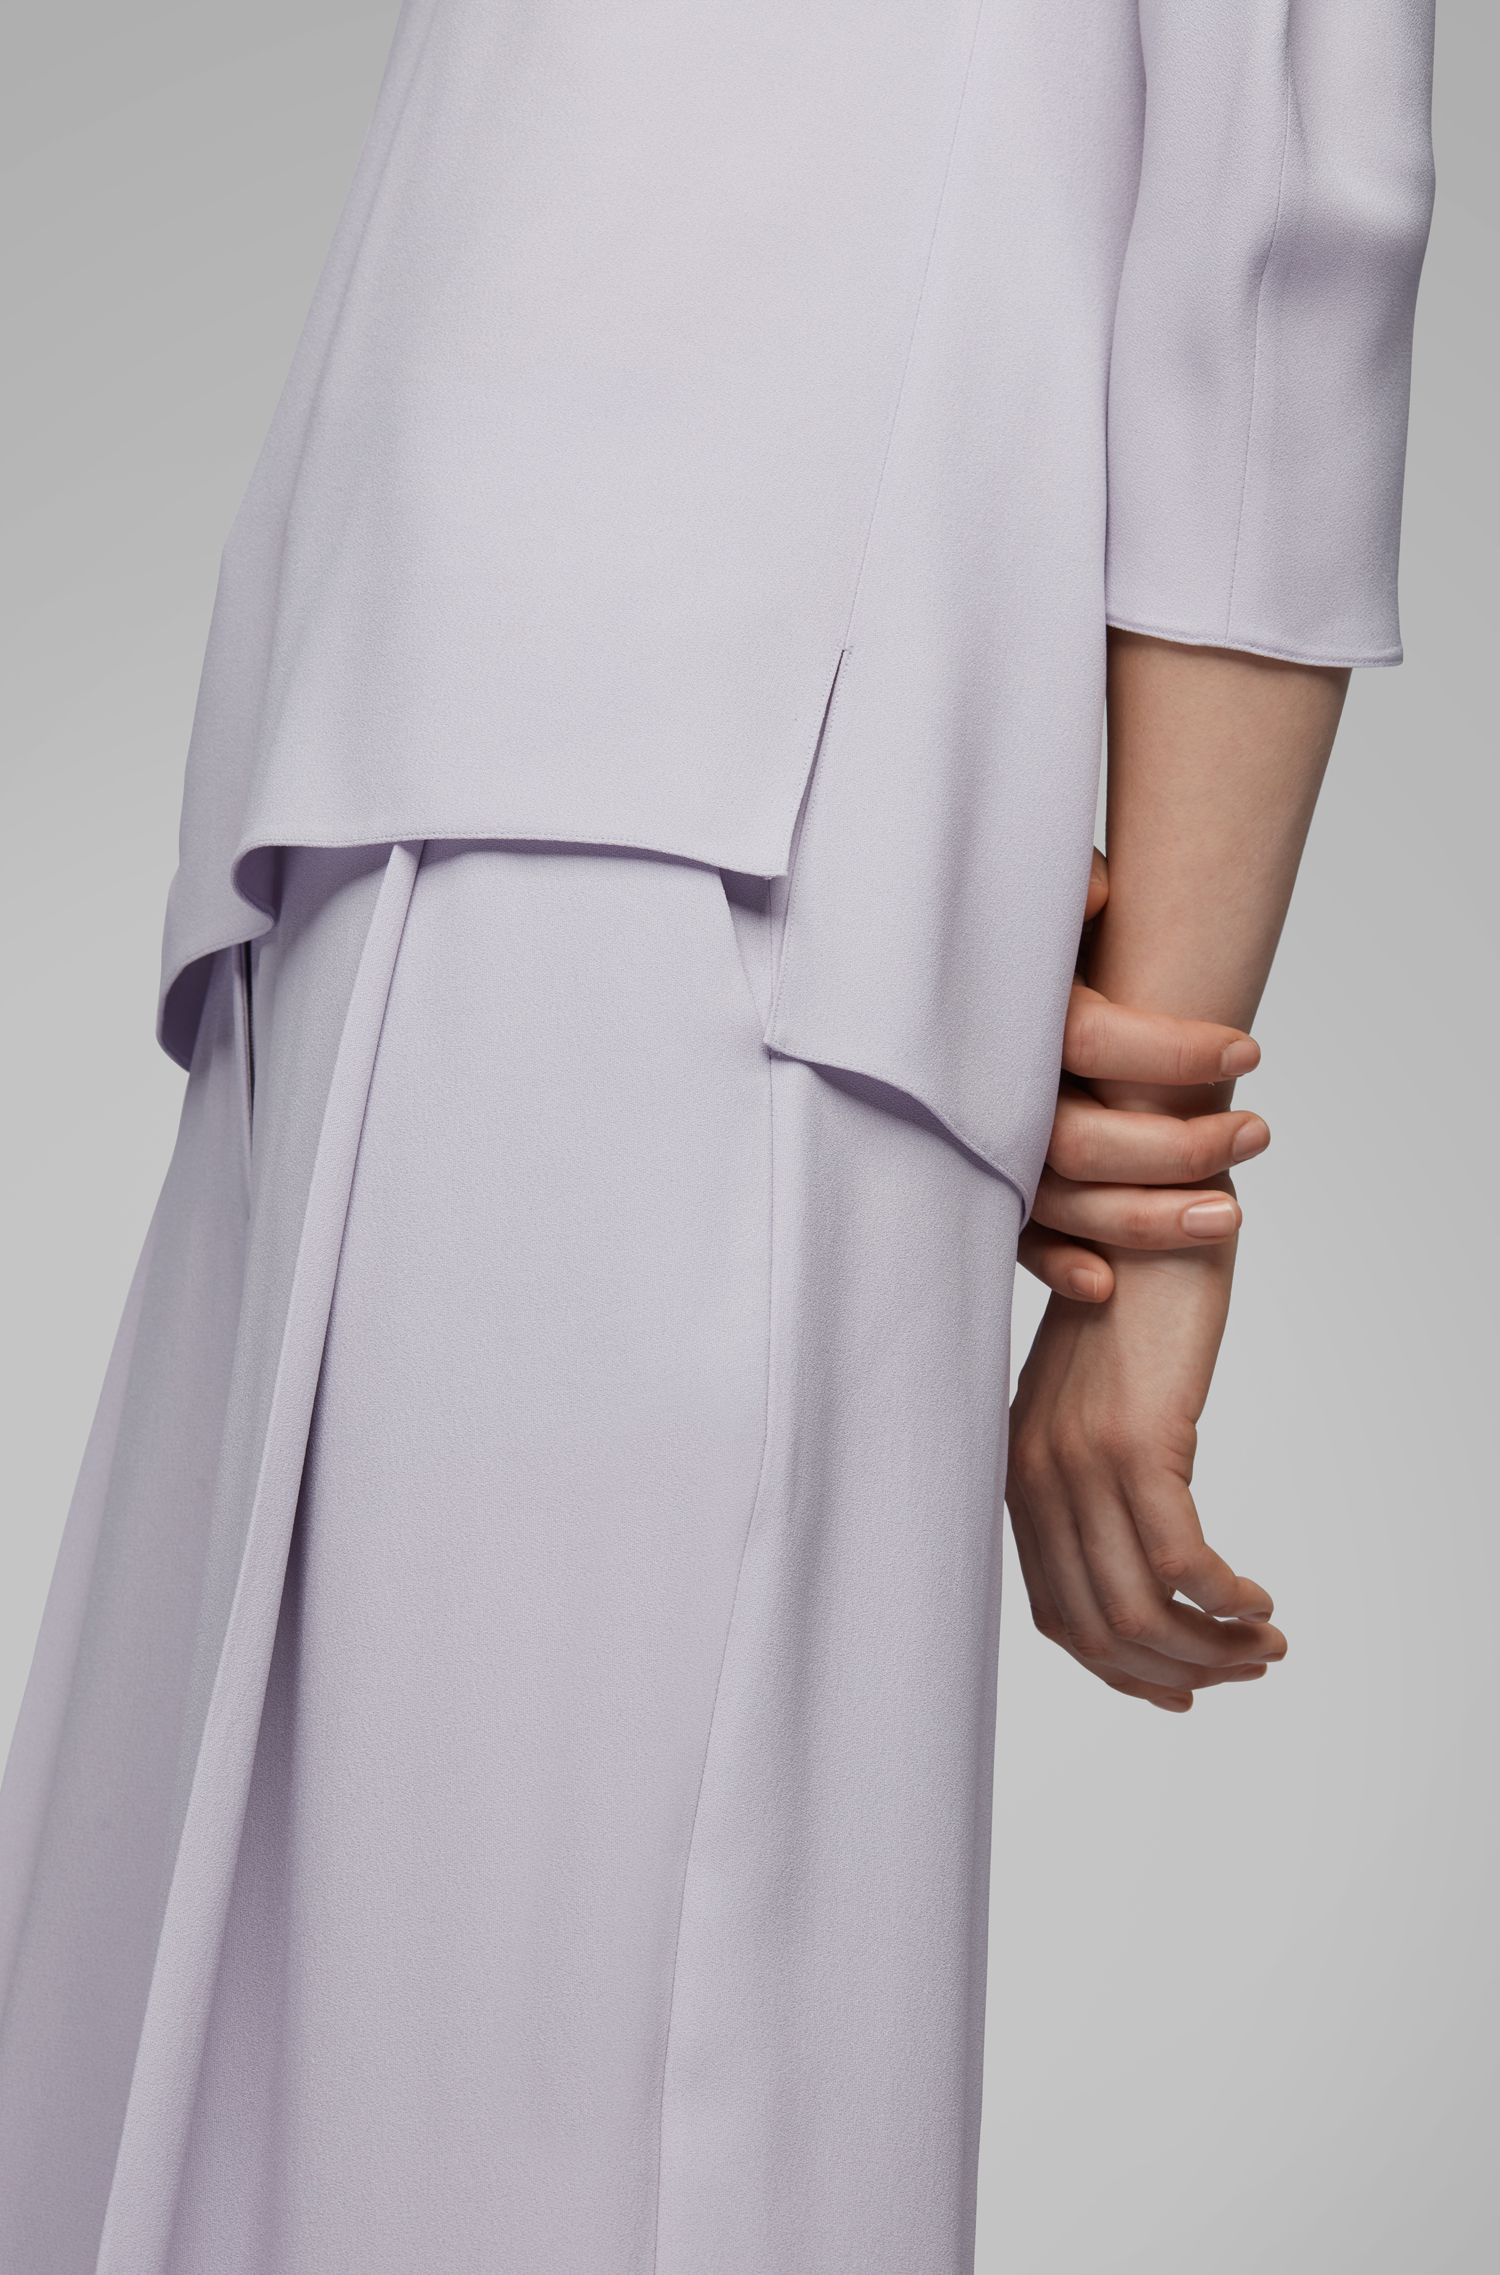 Bow-detail blouse in Italian satinback crepe, Light Purple